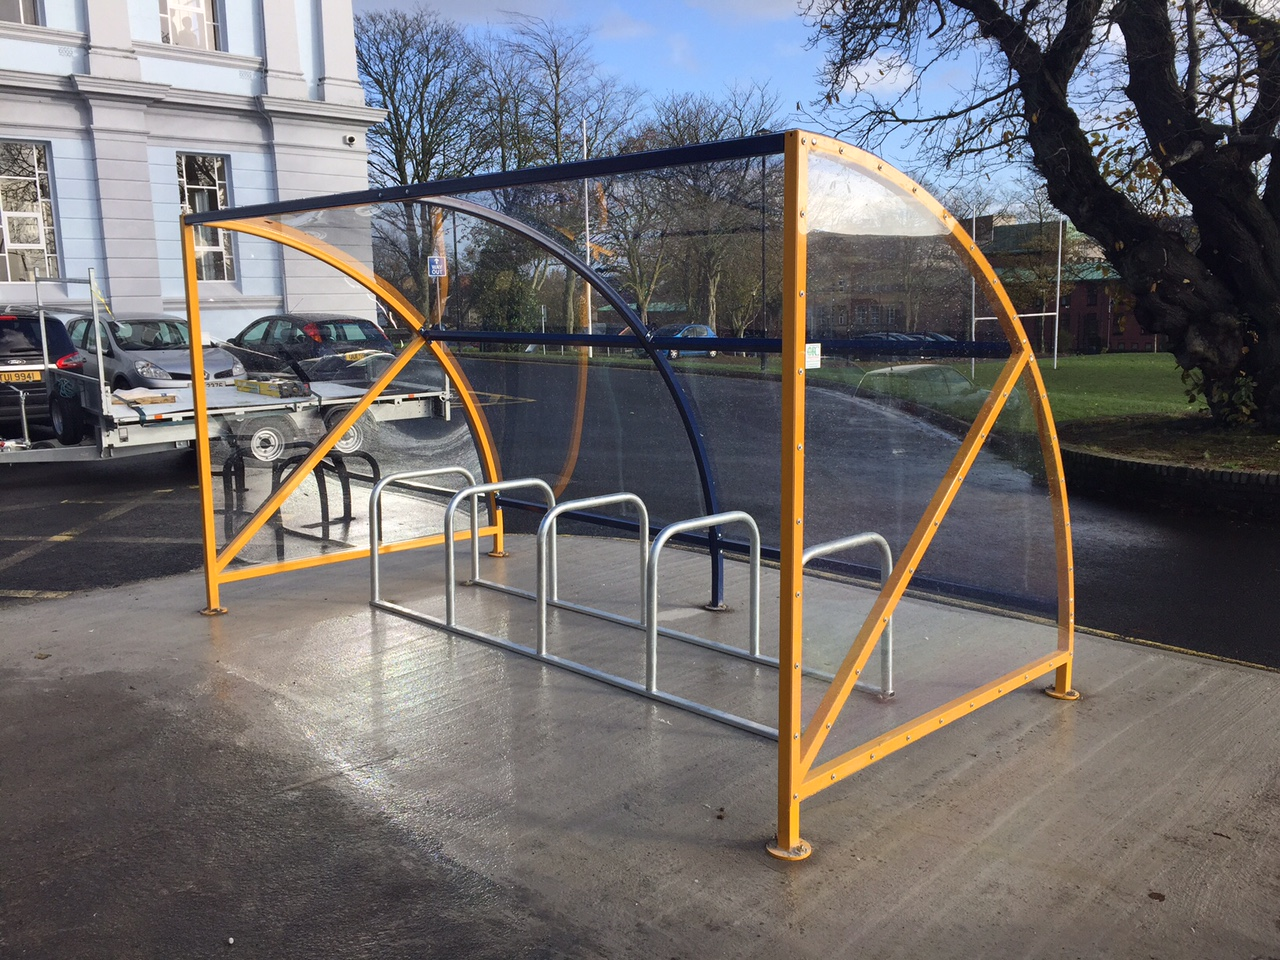 Kylemore Cycle Shelter